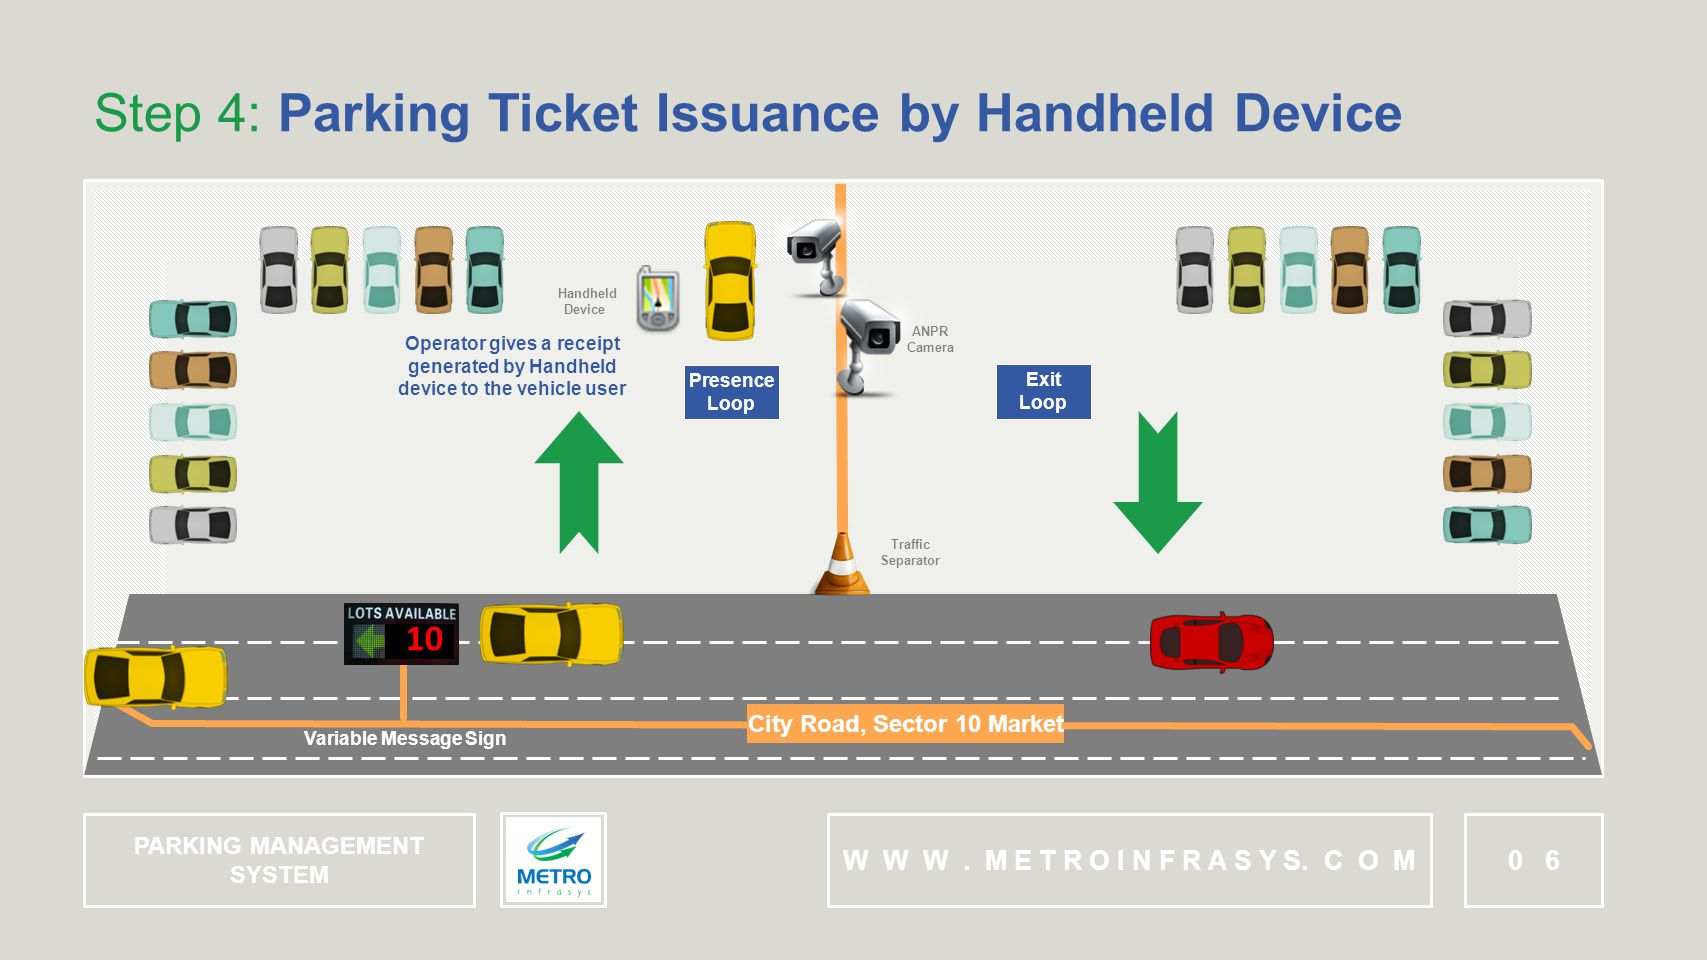 ANPR Camera Traffic Separator Step 4: Parking Ticket Issuance by Handheld Device W W W.